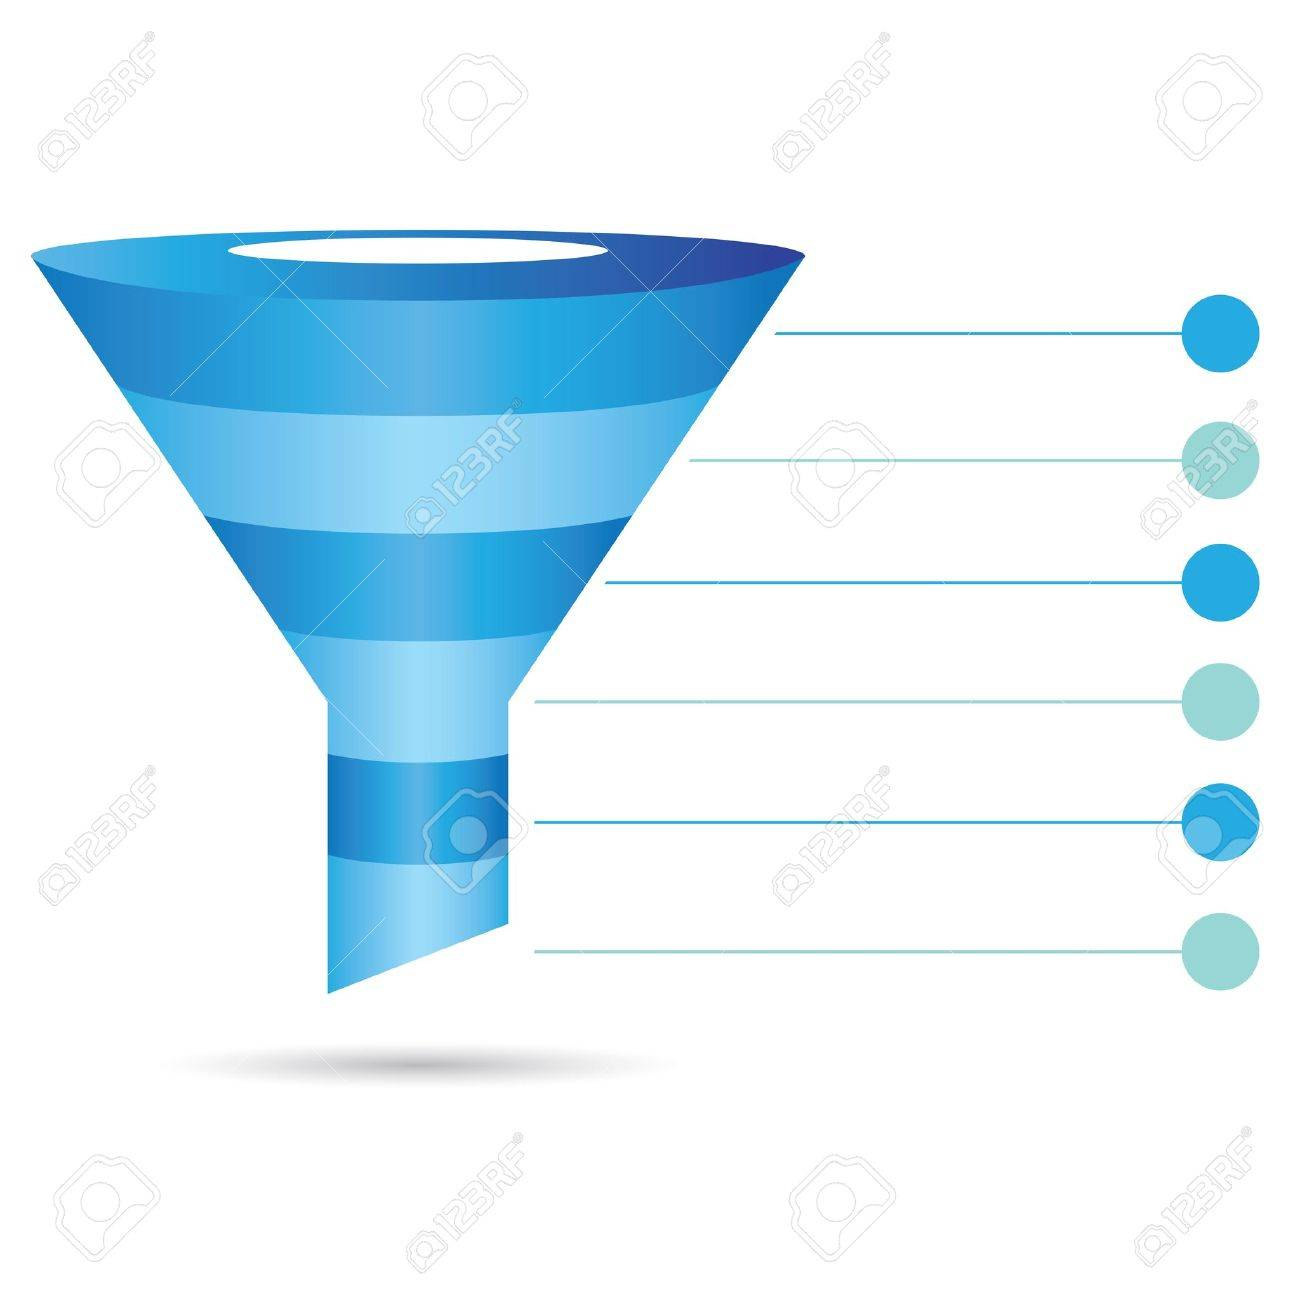 Funnel diagram process chart filter royalty free cliparts vectors funnel diagram process chart filter stock vector 39489845 ccuart Image collections